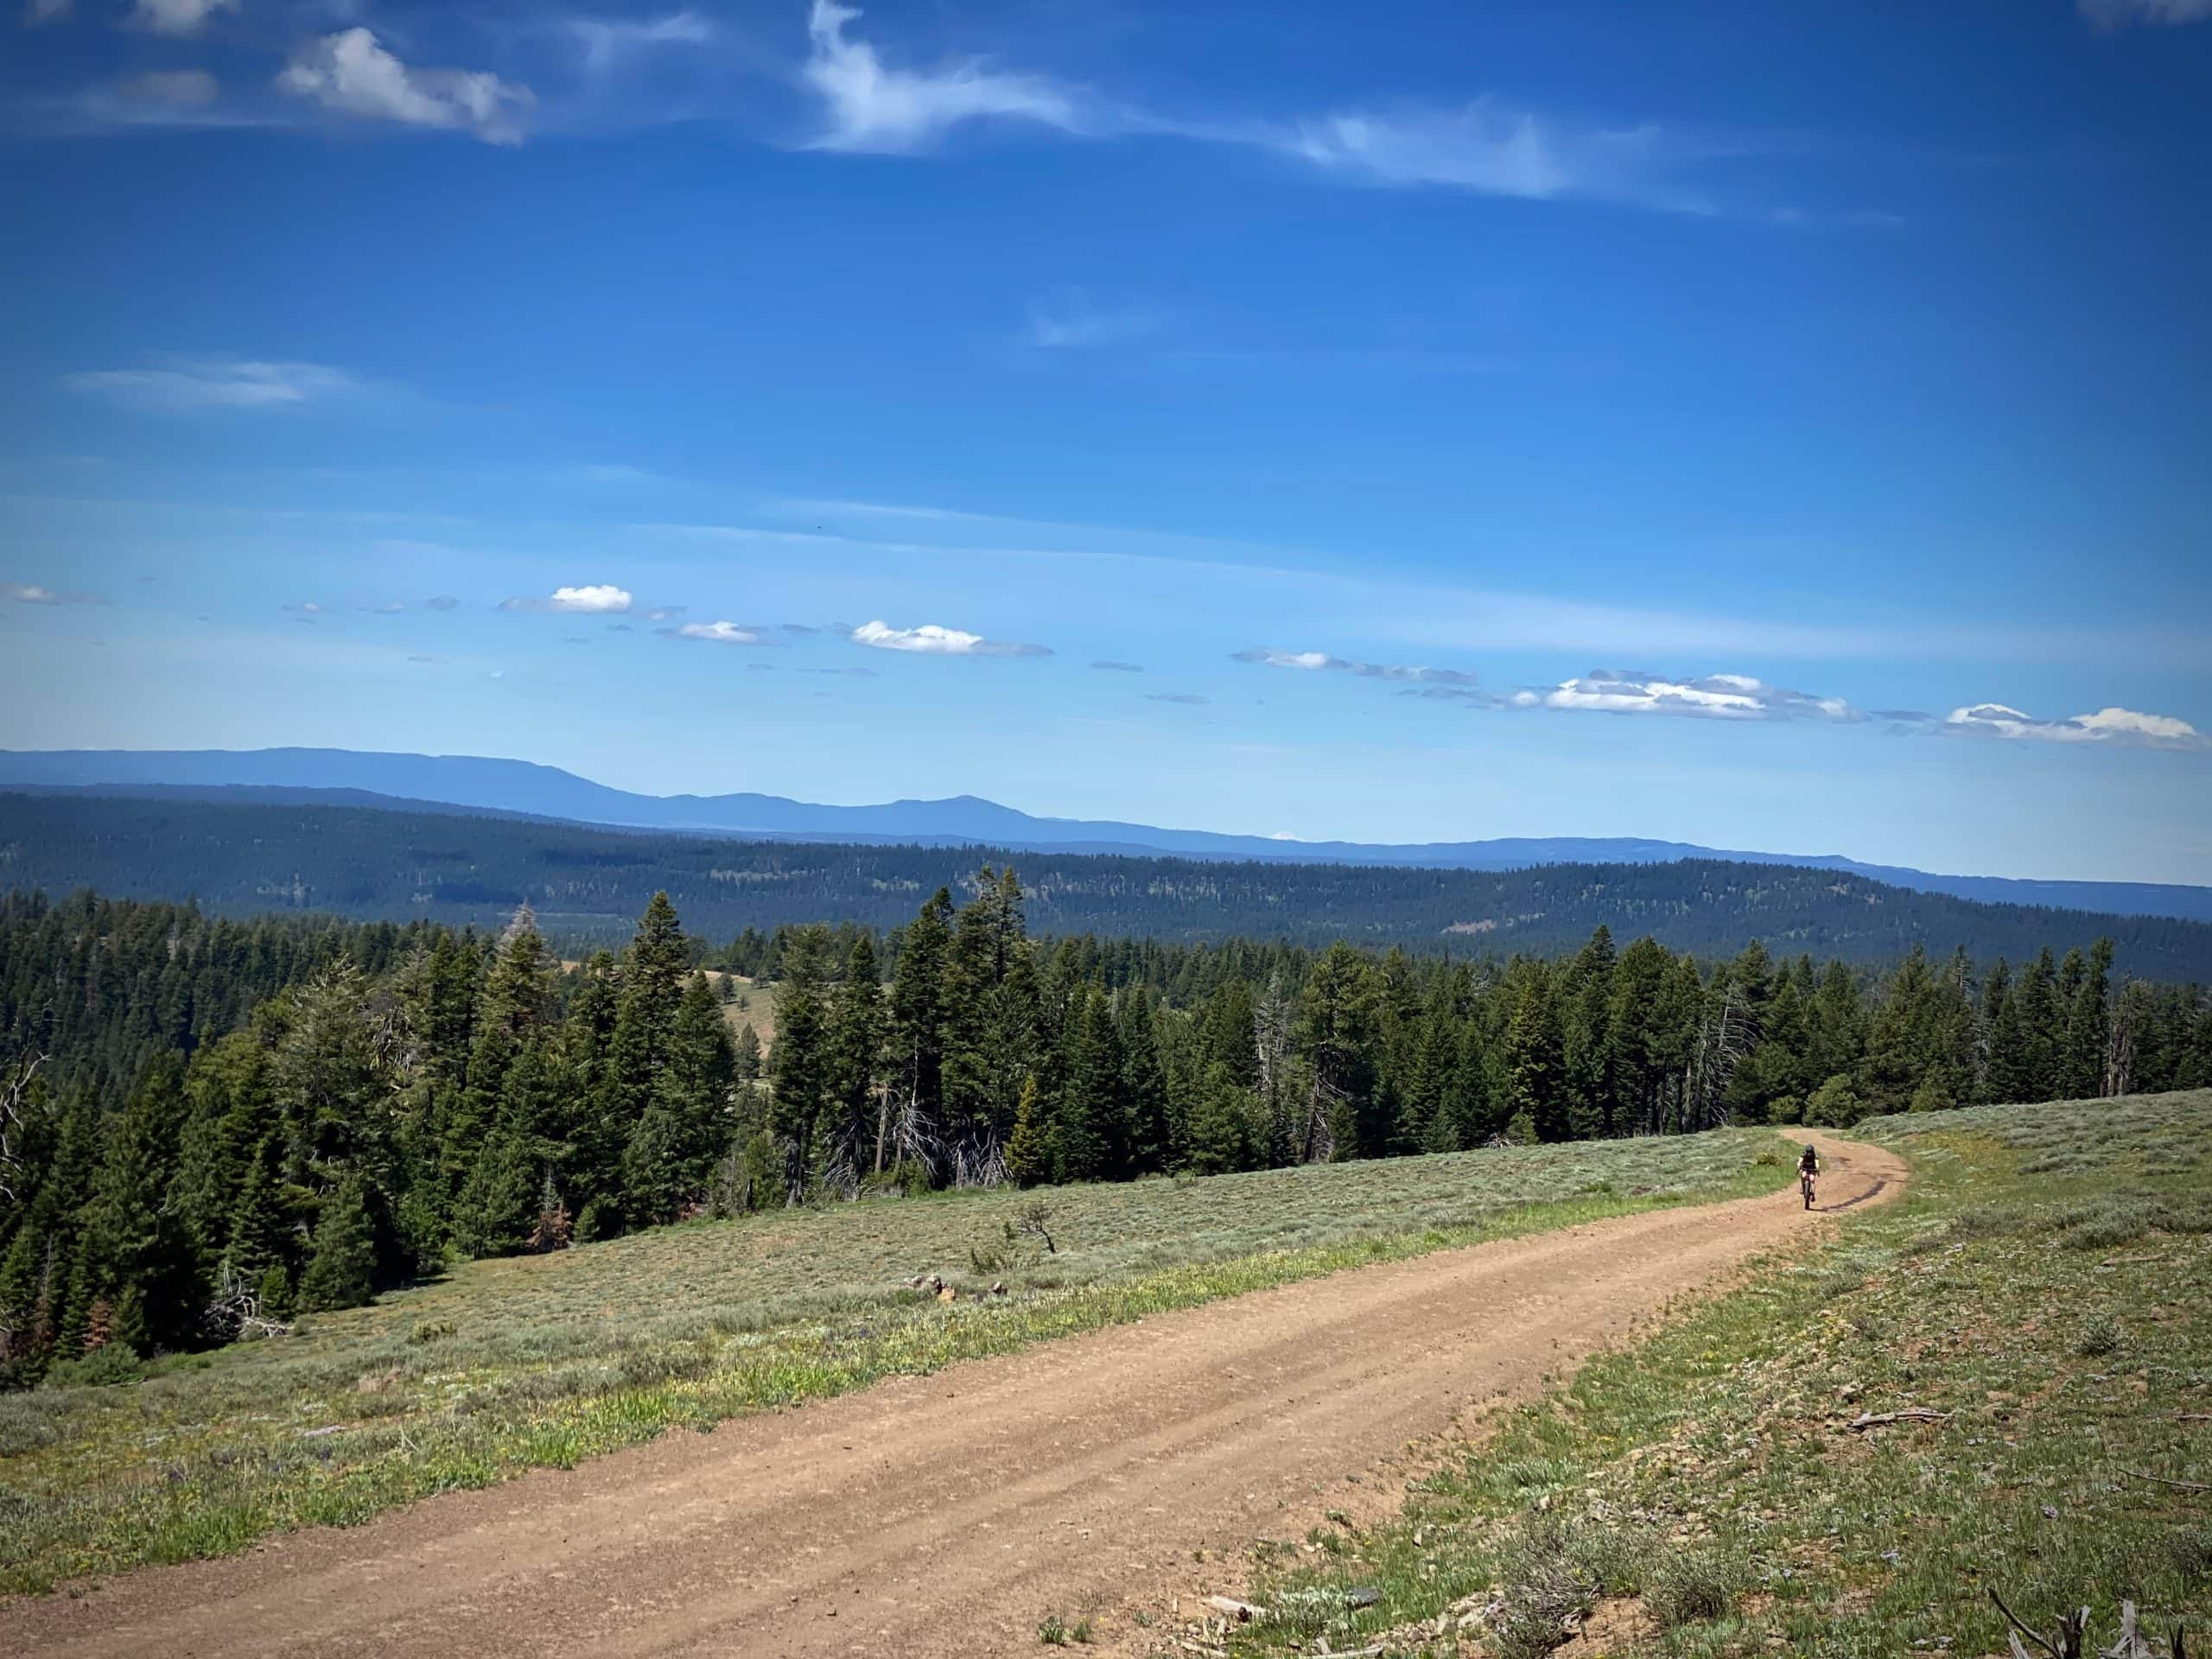 Bike rider on gravel road near Wolf Mountain Lookout in the Ochoco National forest.